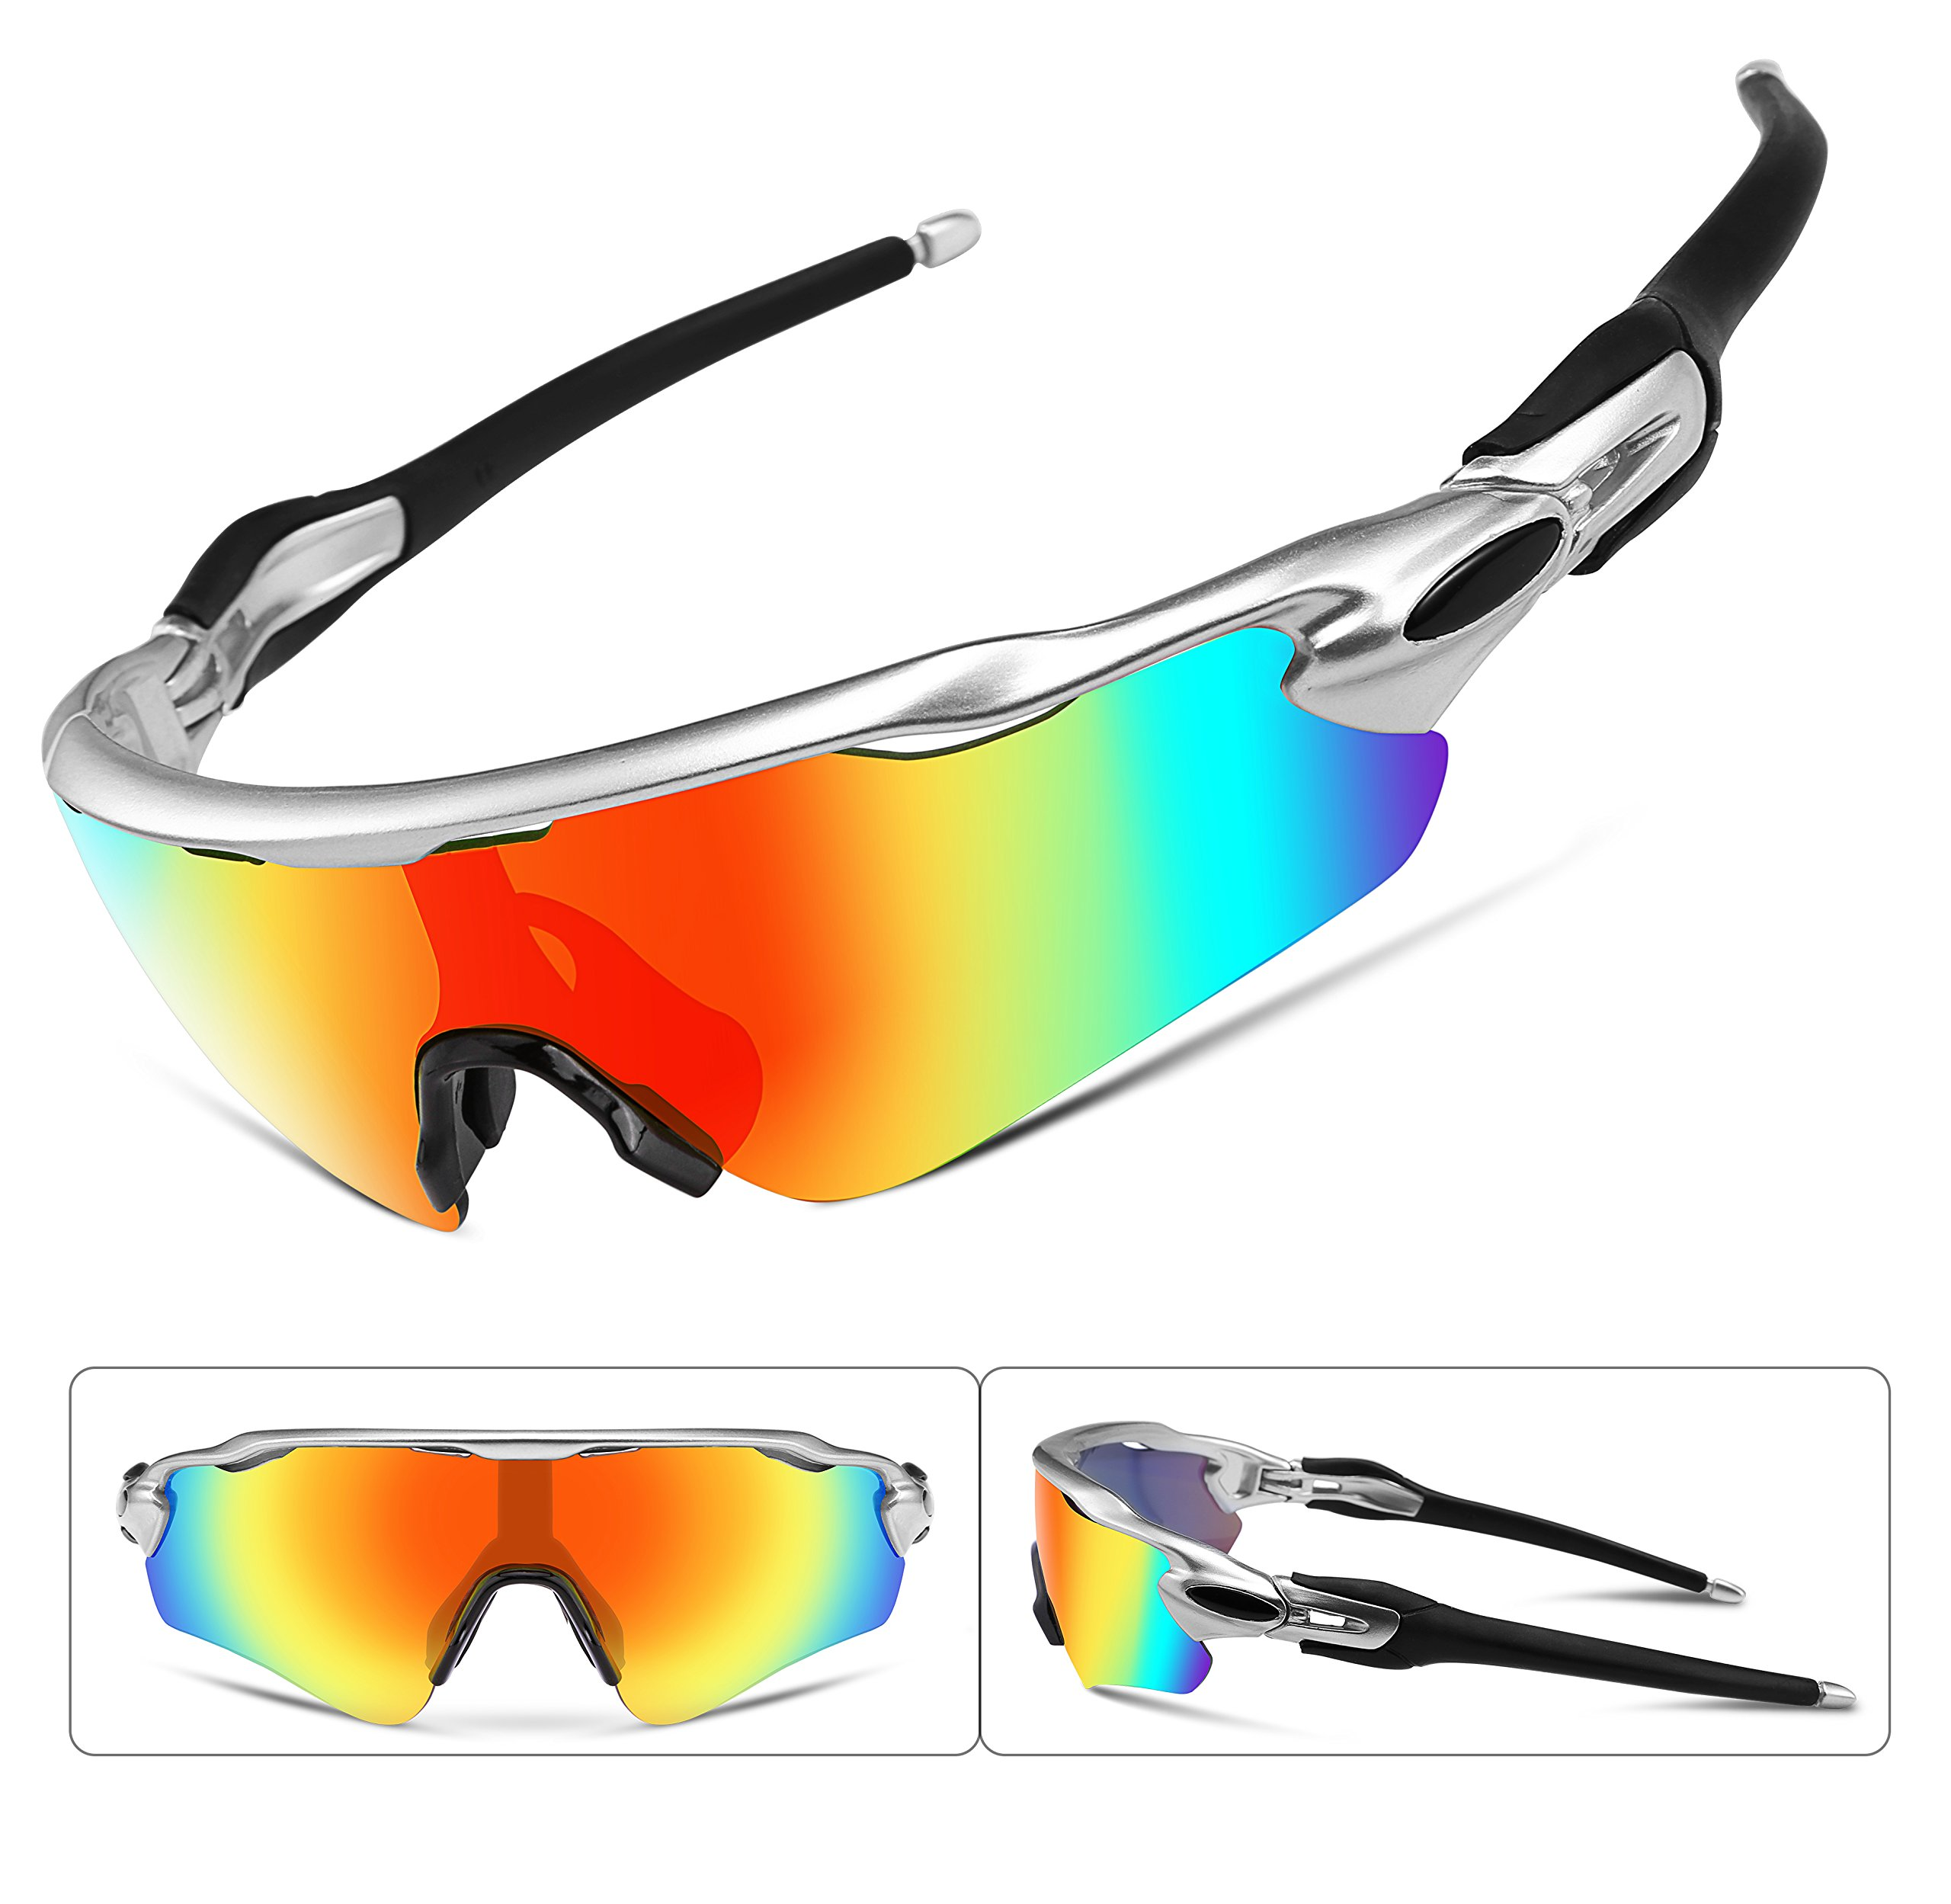 FEISEDY Polarized Sports Sunglasses Changeable Lenses TR90 Frame Cycling B2280 (6, 52) by FEISEDY